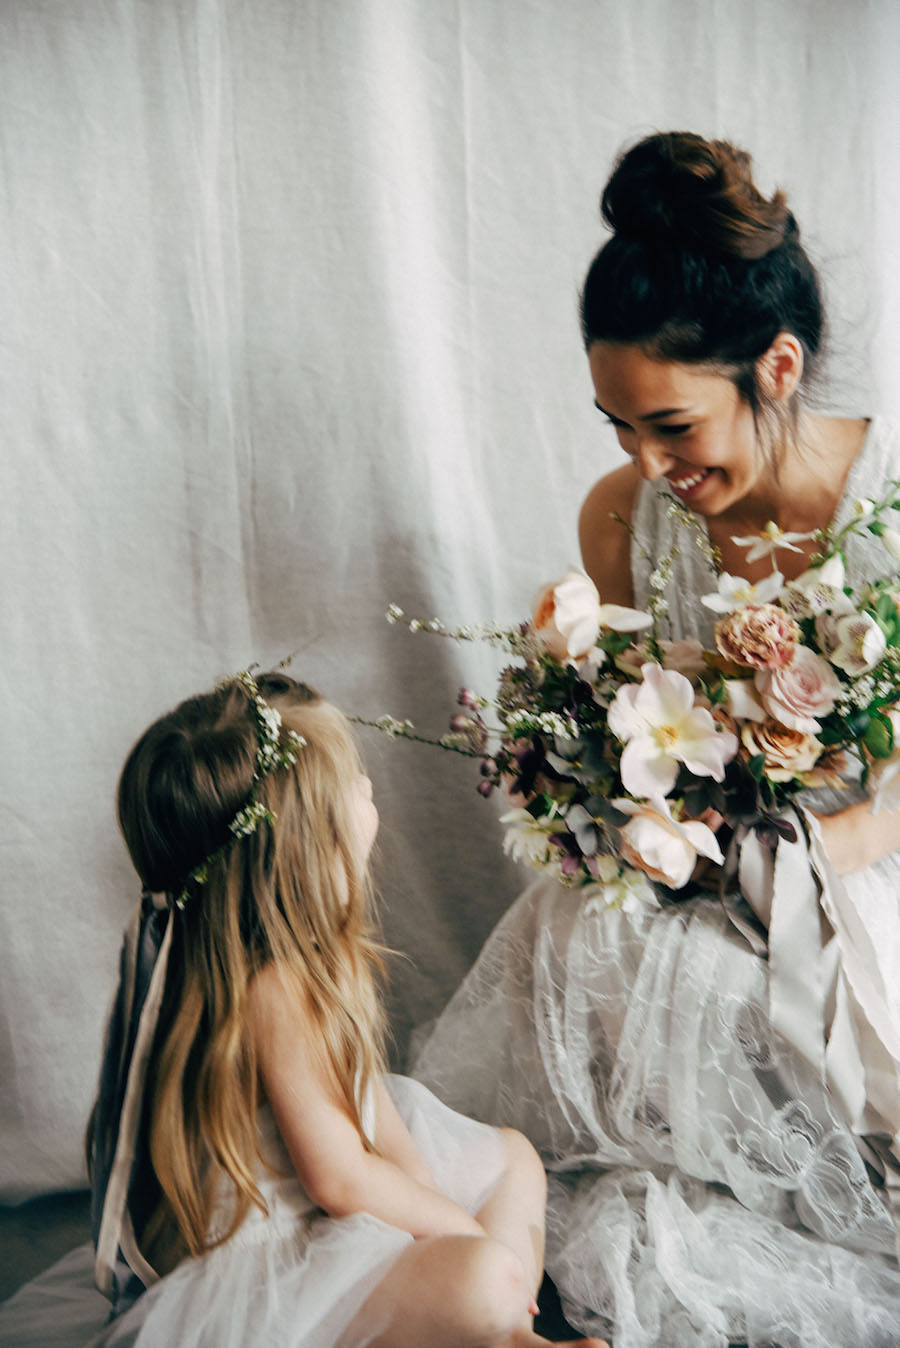 The most adorable flower girl and bride moment. Beautiful blooms by Soil & Stem, captured by Tess Comrie, now on Cottage Hill.